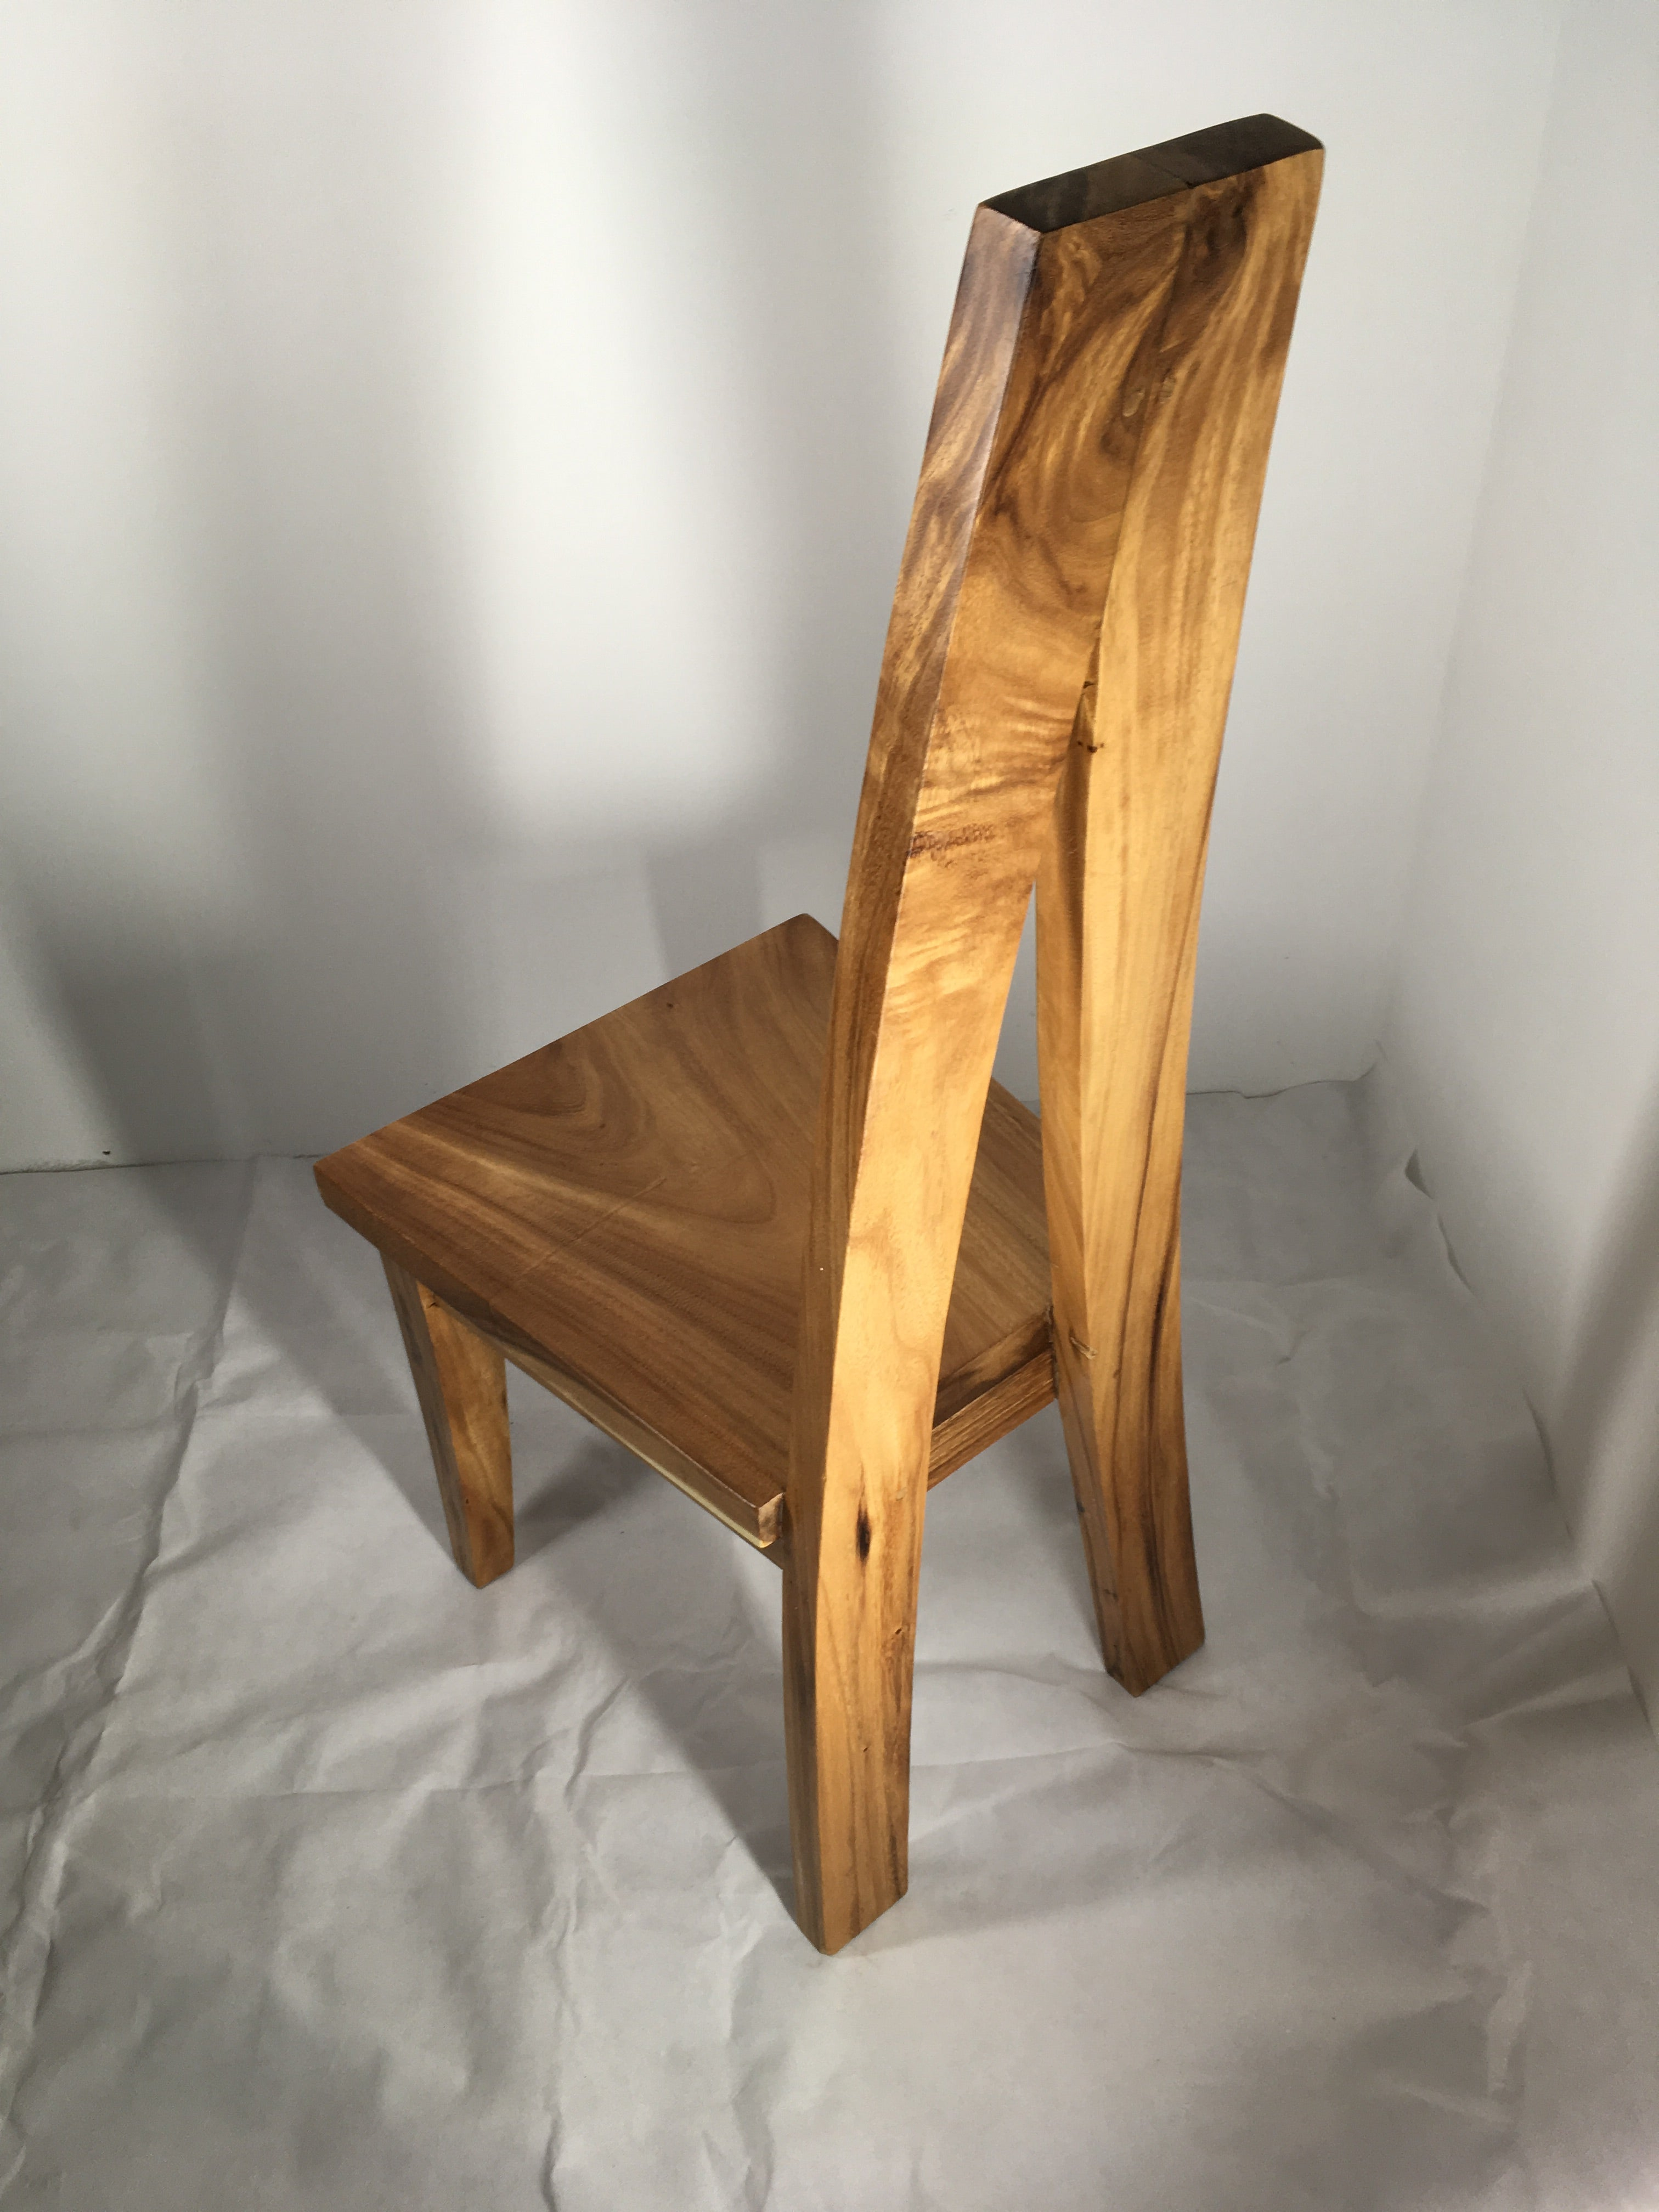 Live Edge Solid Wood Dining Chairs Toronto Ontario Unique One of a Kind